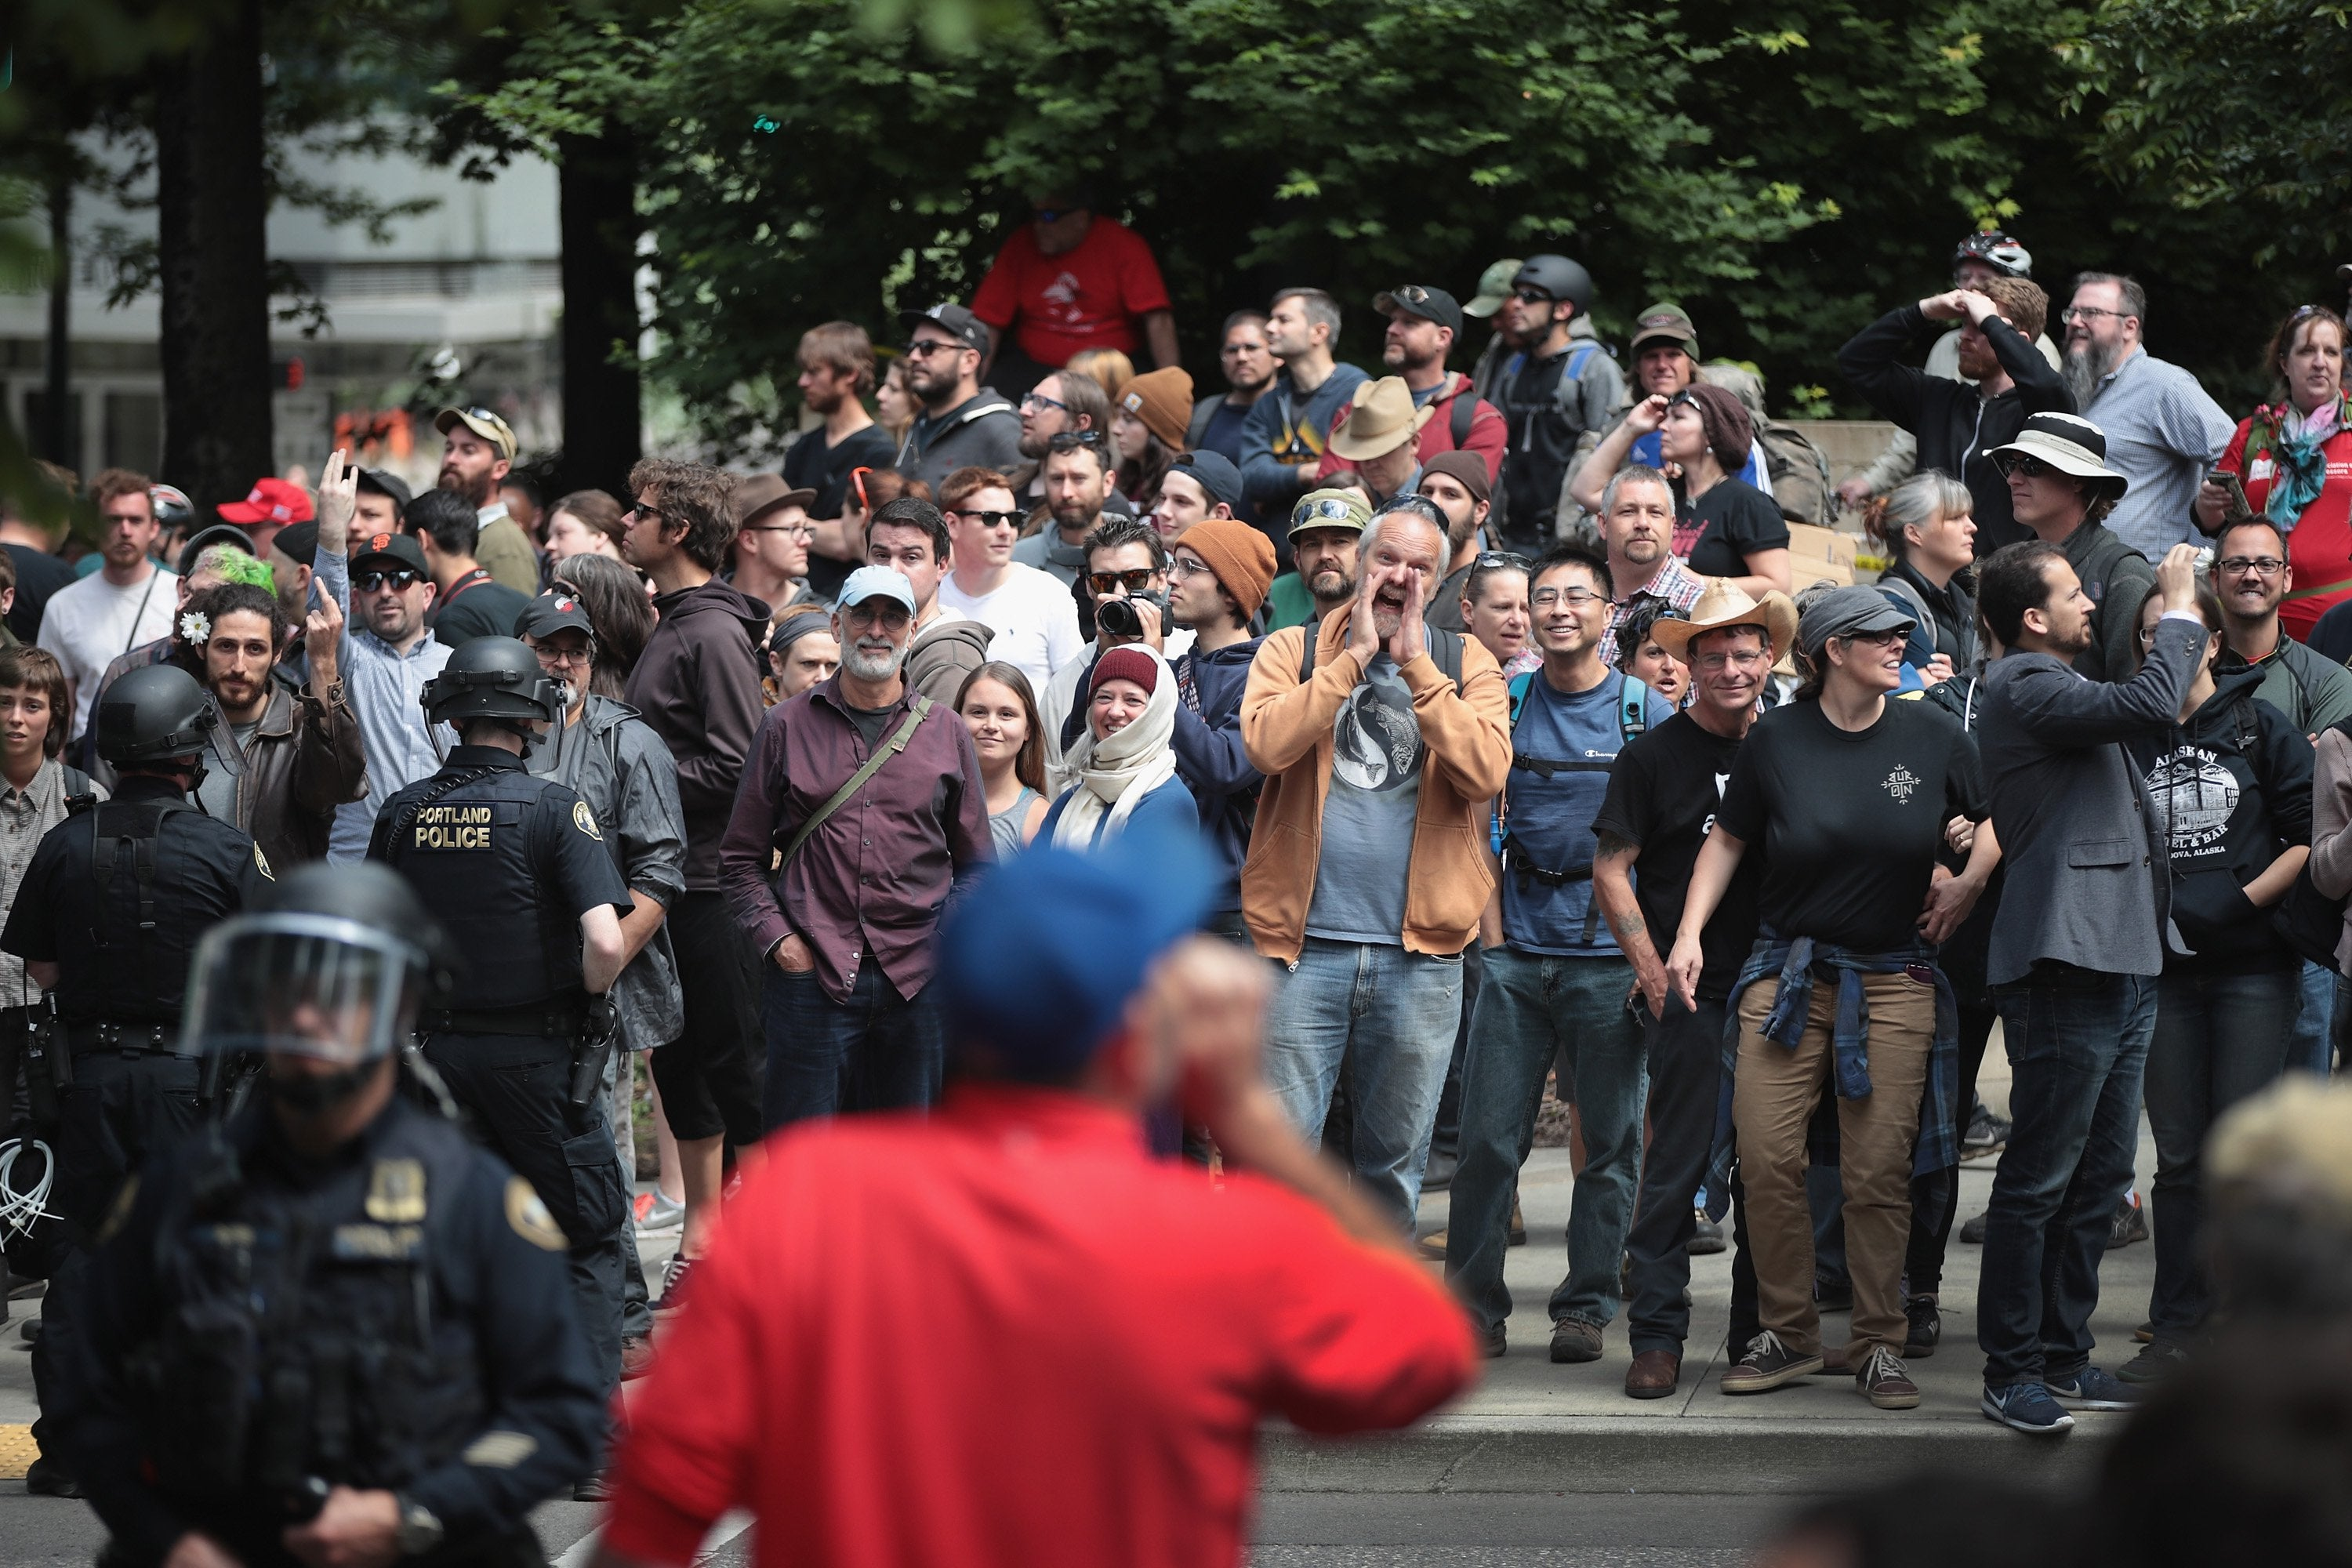 14 Arrested As Pro And Anti-Trump Protestors Clash With Police In Portland